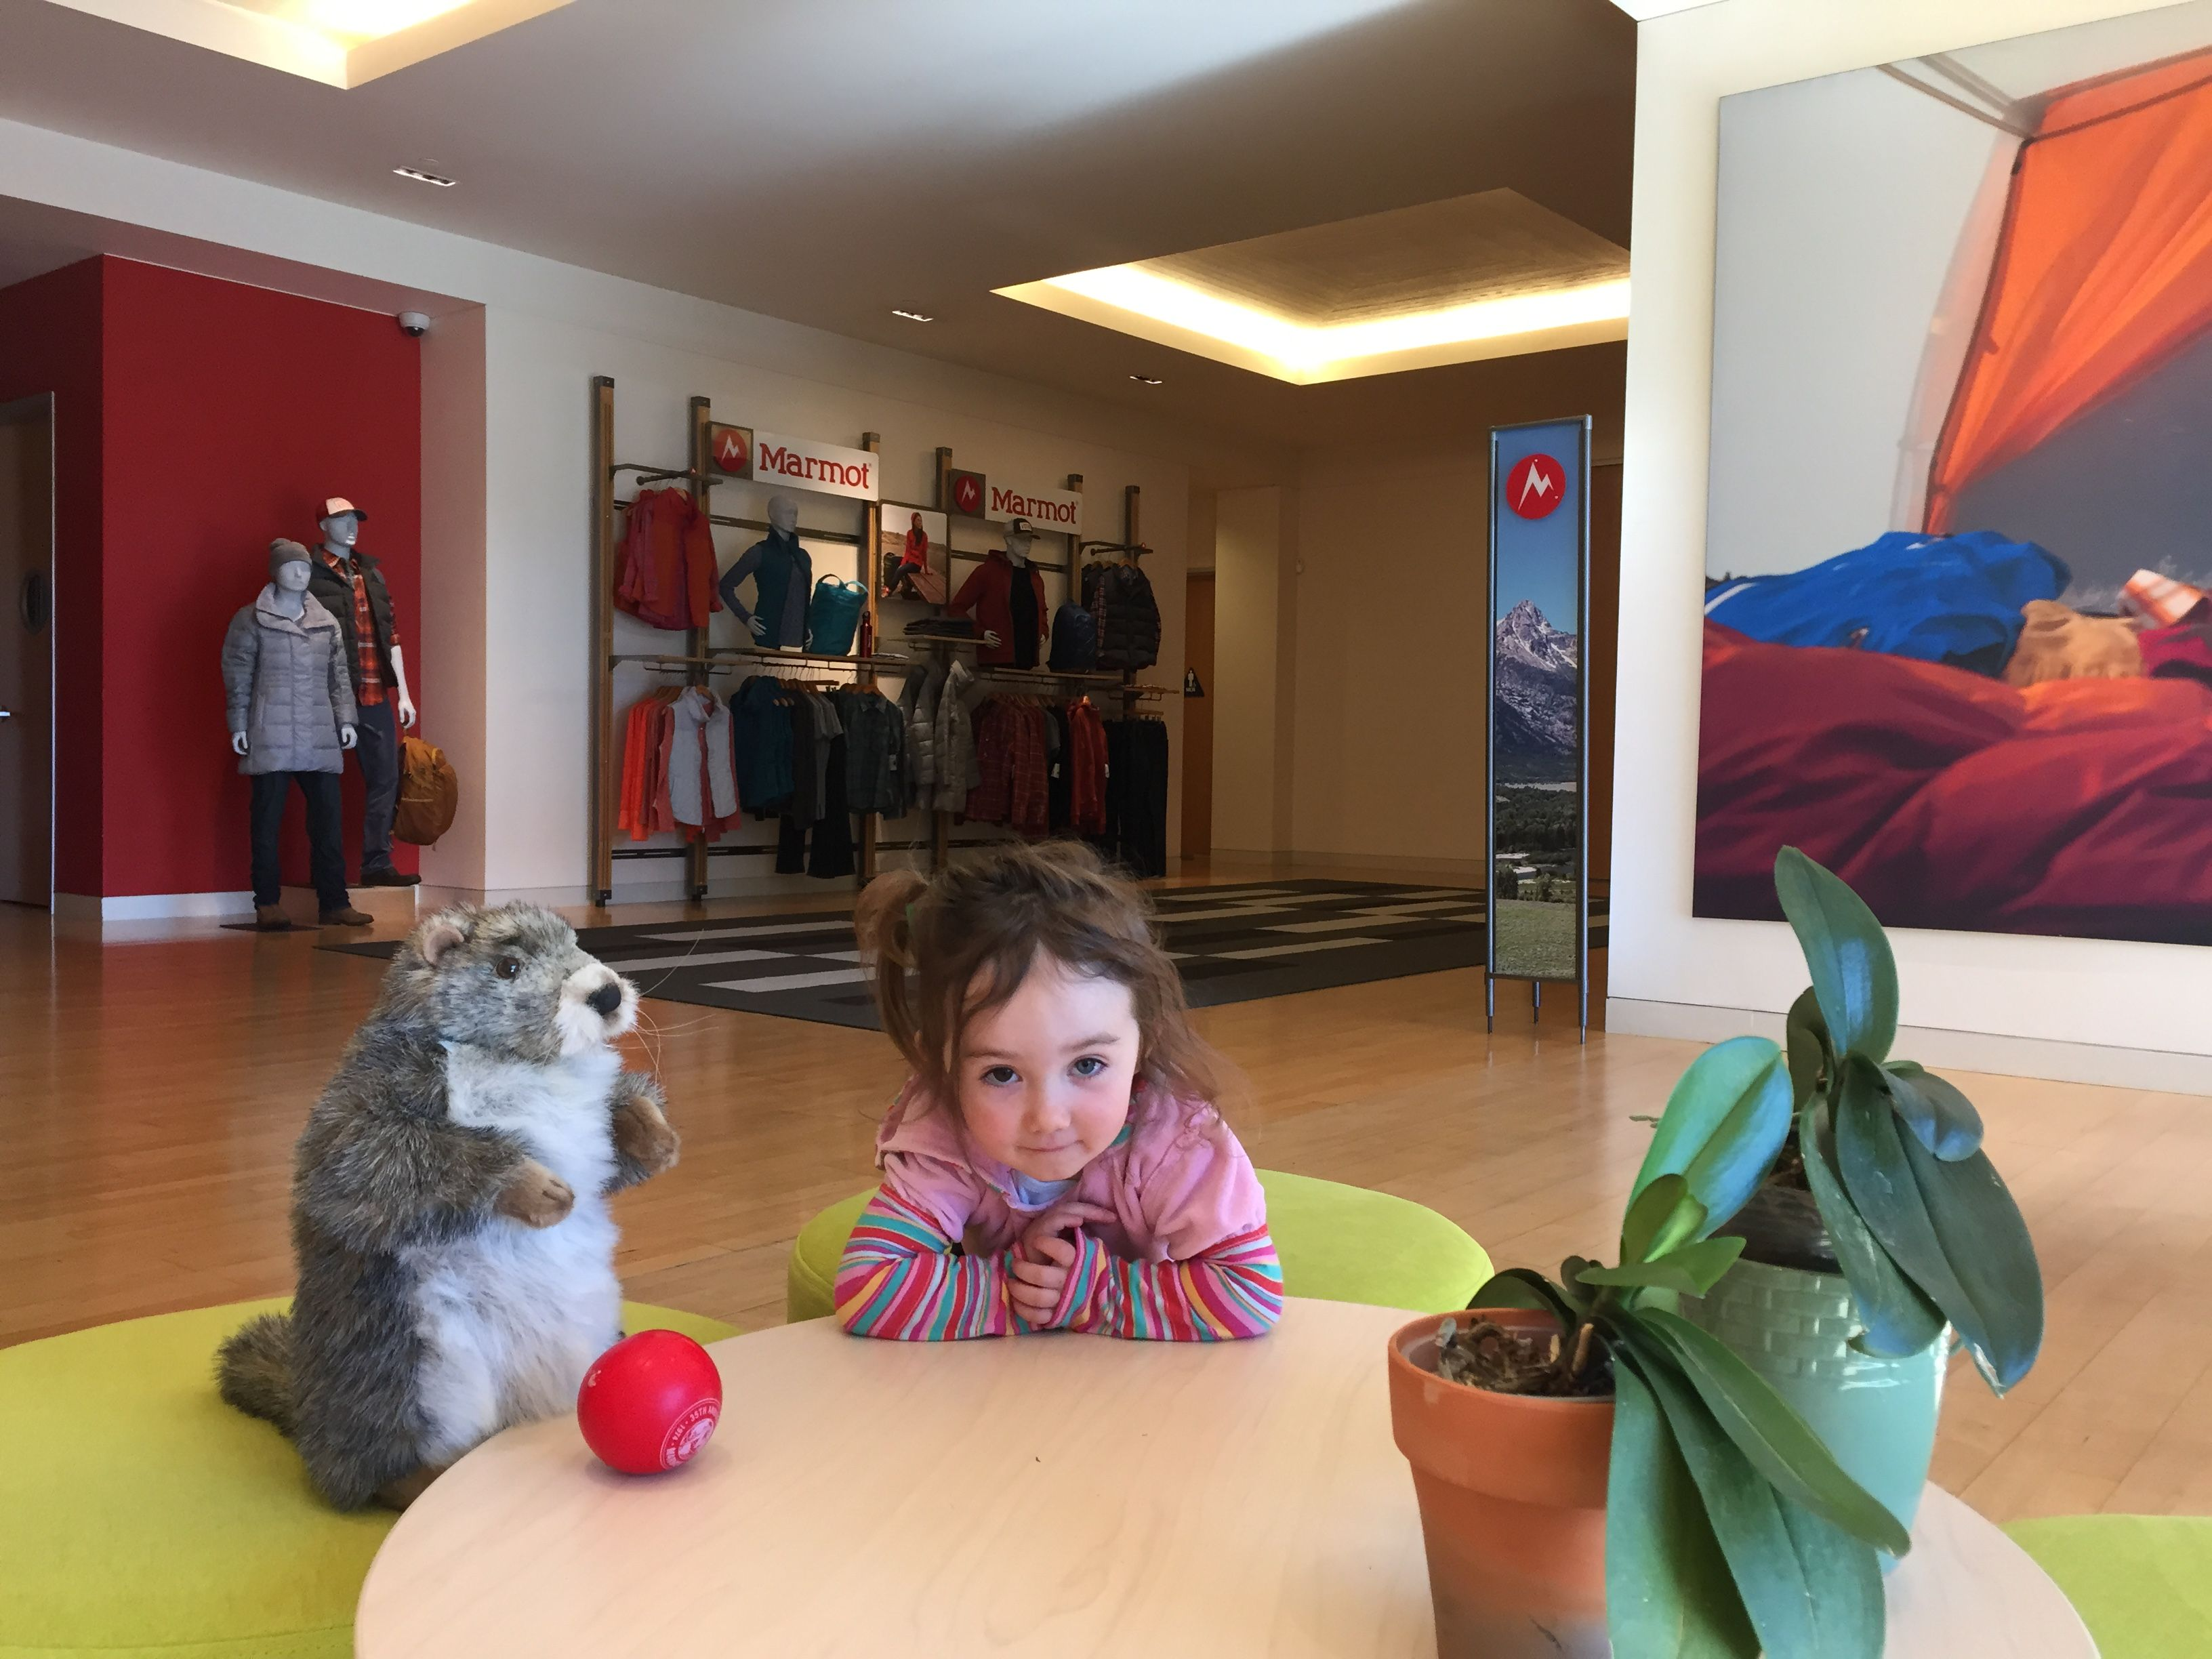 Future Marmot Athlete meets with the Marketing Team at Marmot HQ in California for some serious negotiations #WhatGivesYouLife